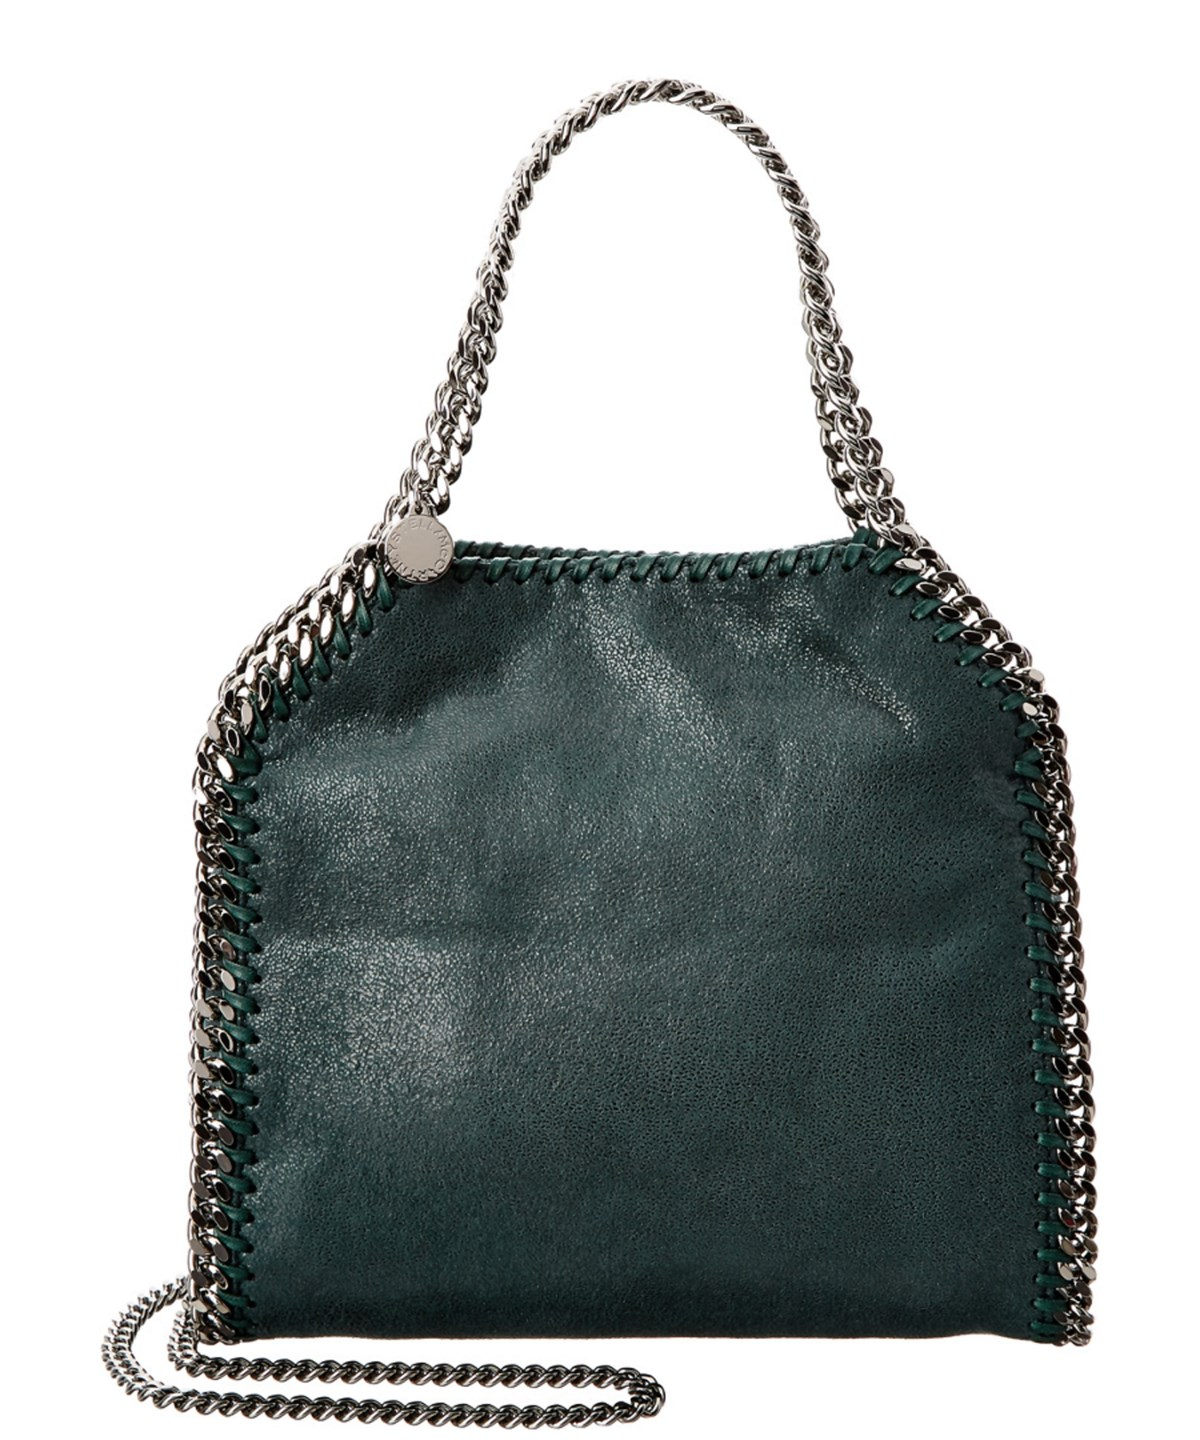 STELLA MCCARTNEY Falabella Shaggy Deer Mini Tote' in Petrol